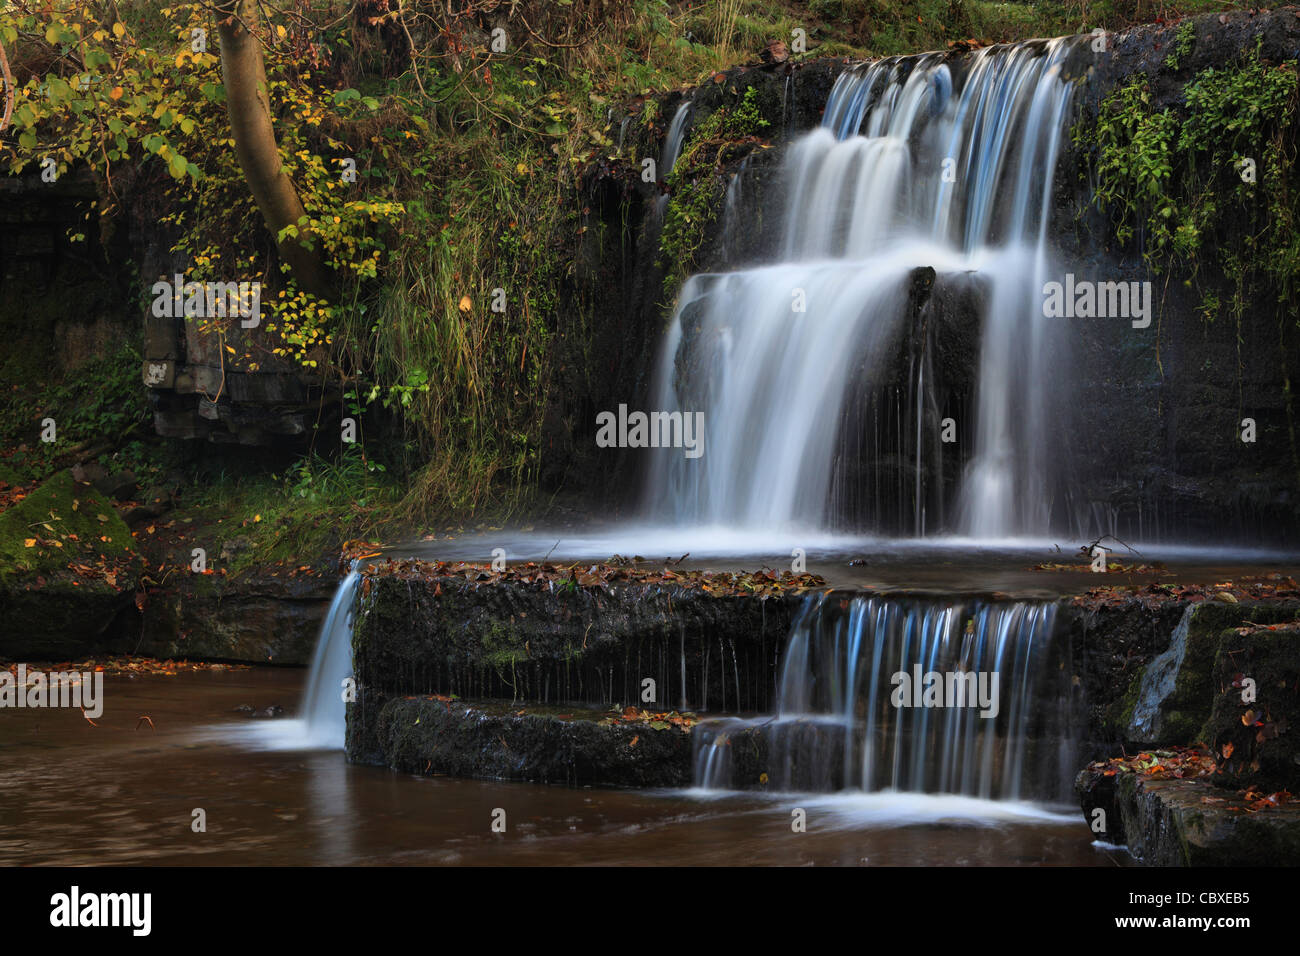 A small waterfall on the River Nidd near Lofthouse in Nidderdale, Yorkshire, England - Stock Image